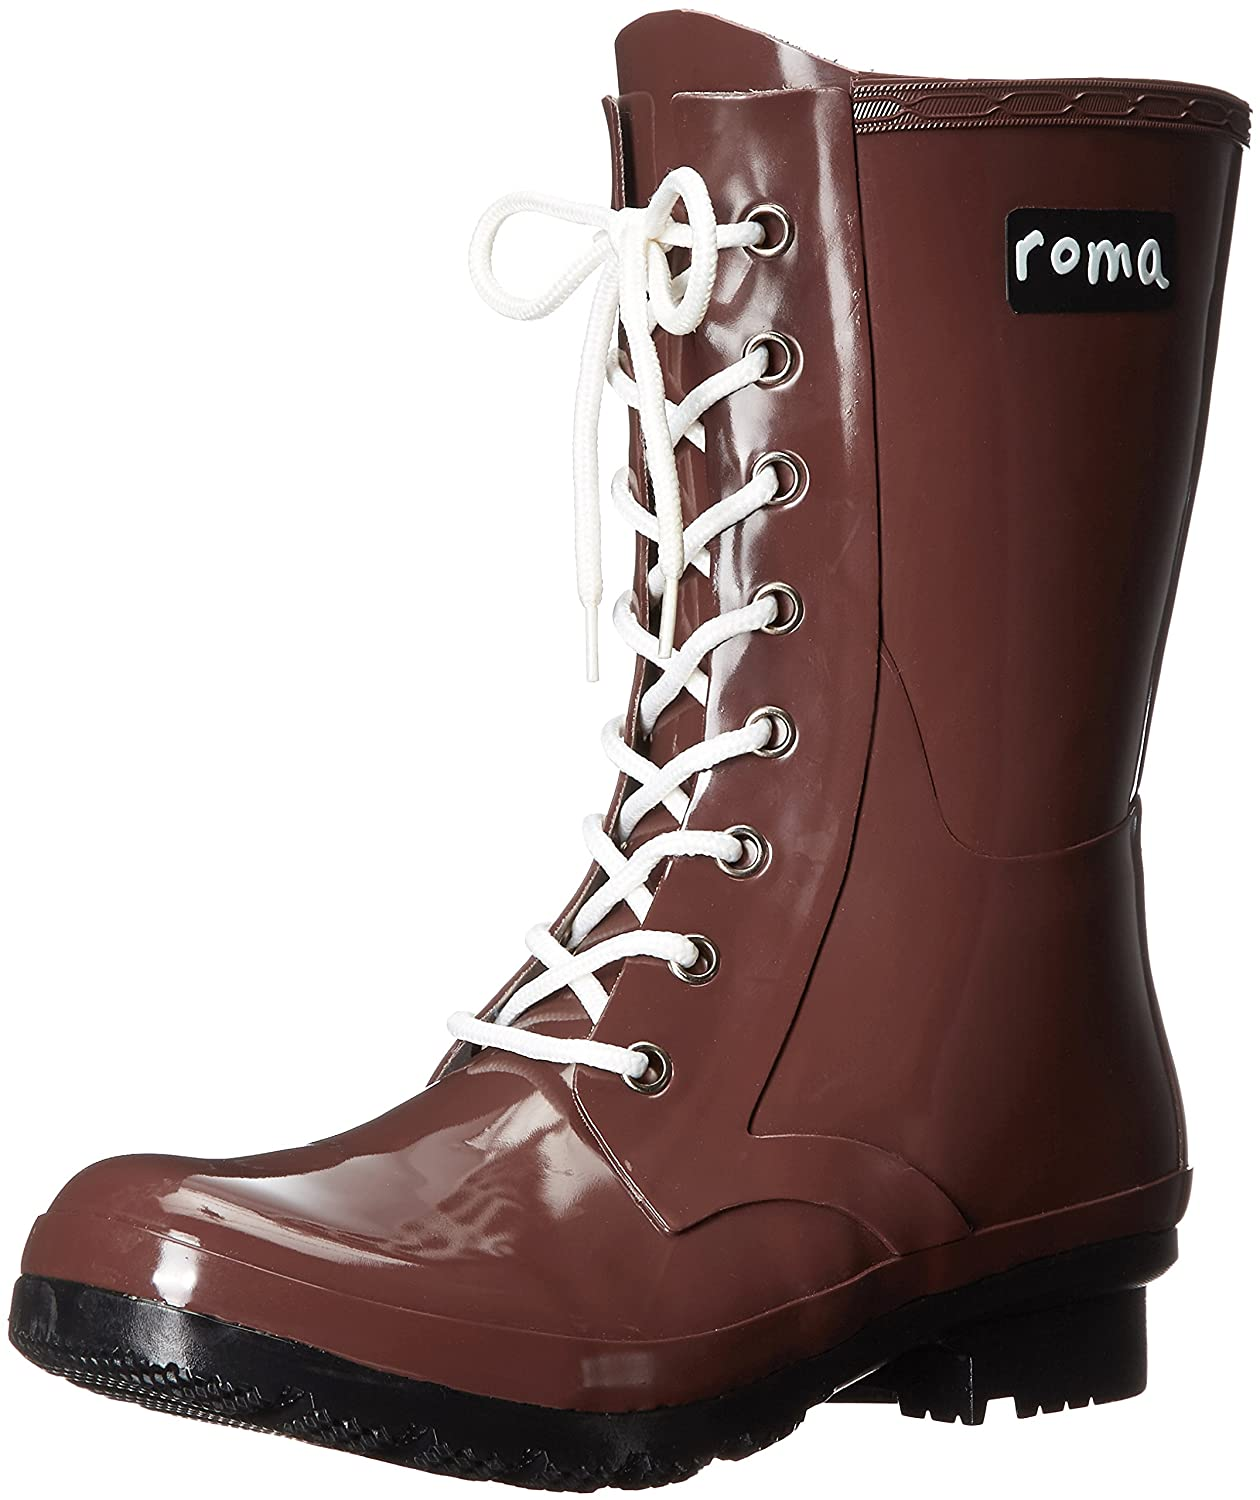 Roma Boots Women's EPAGA Short Lace-up Rain Boots B01L2WNIKS 7 M US|Raisin